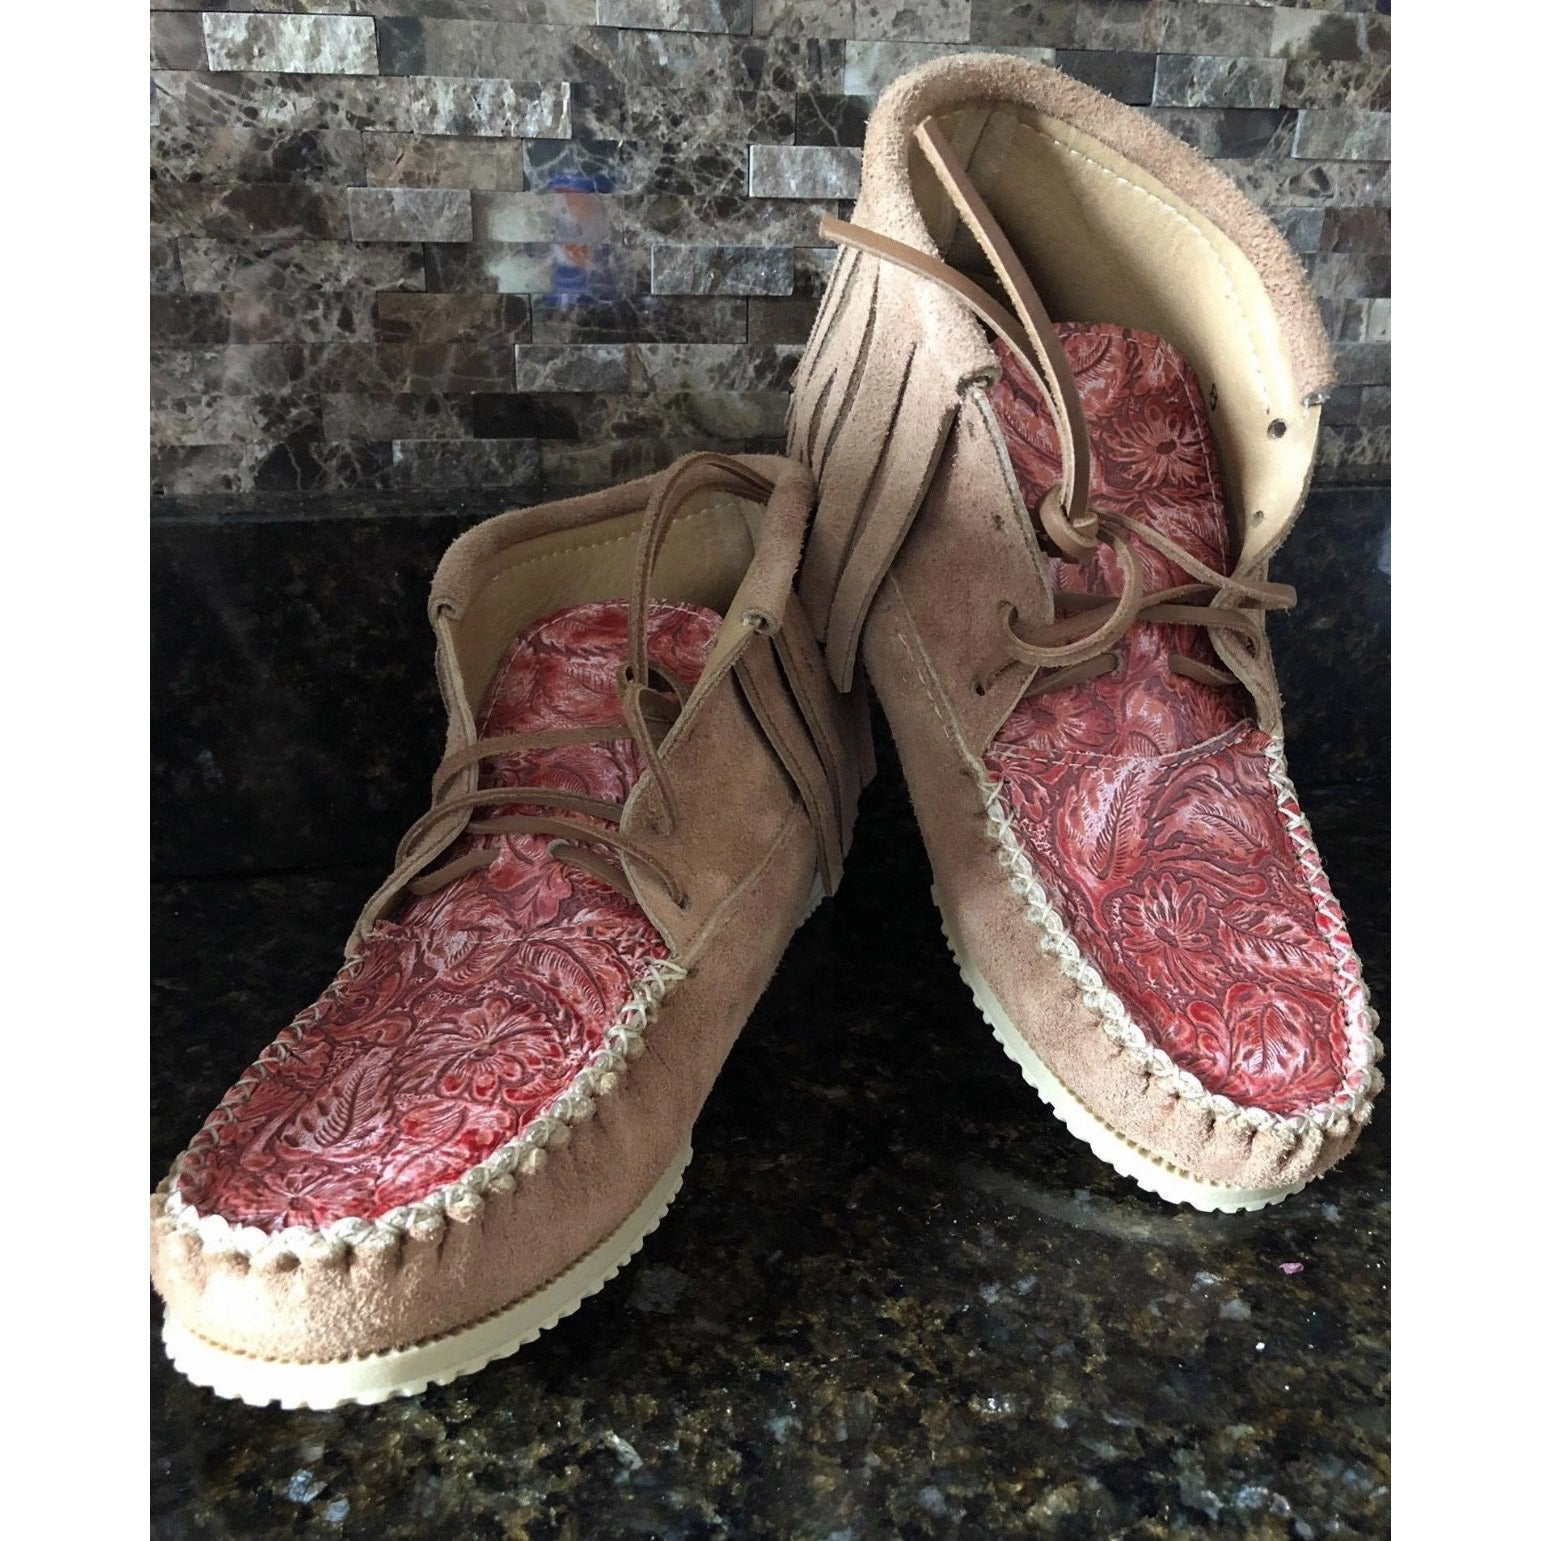 Handmade Moccassions - All Blinged Out/Calamity's